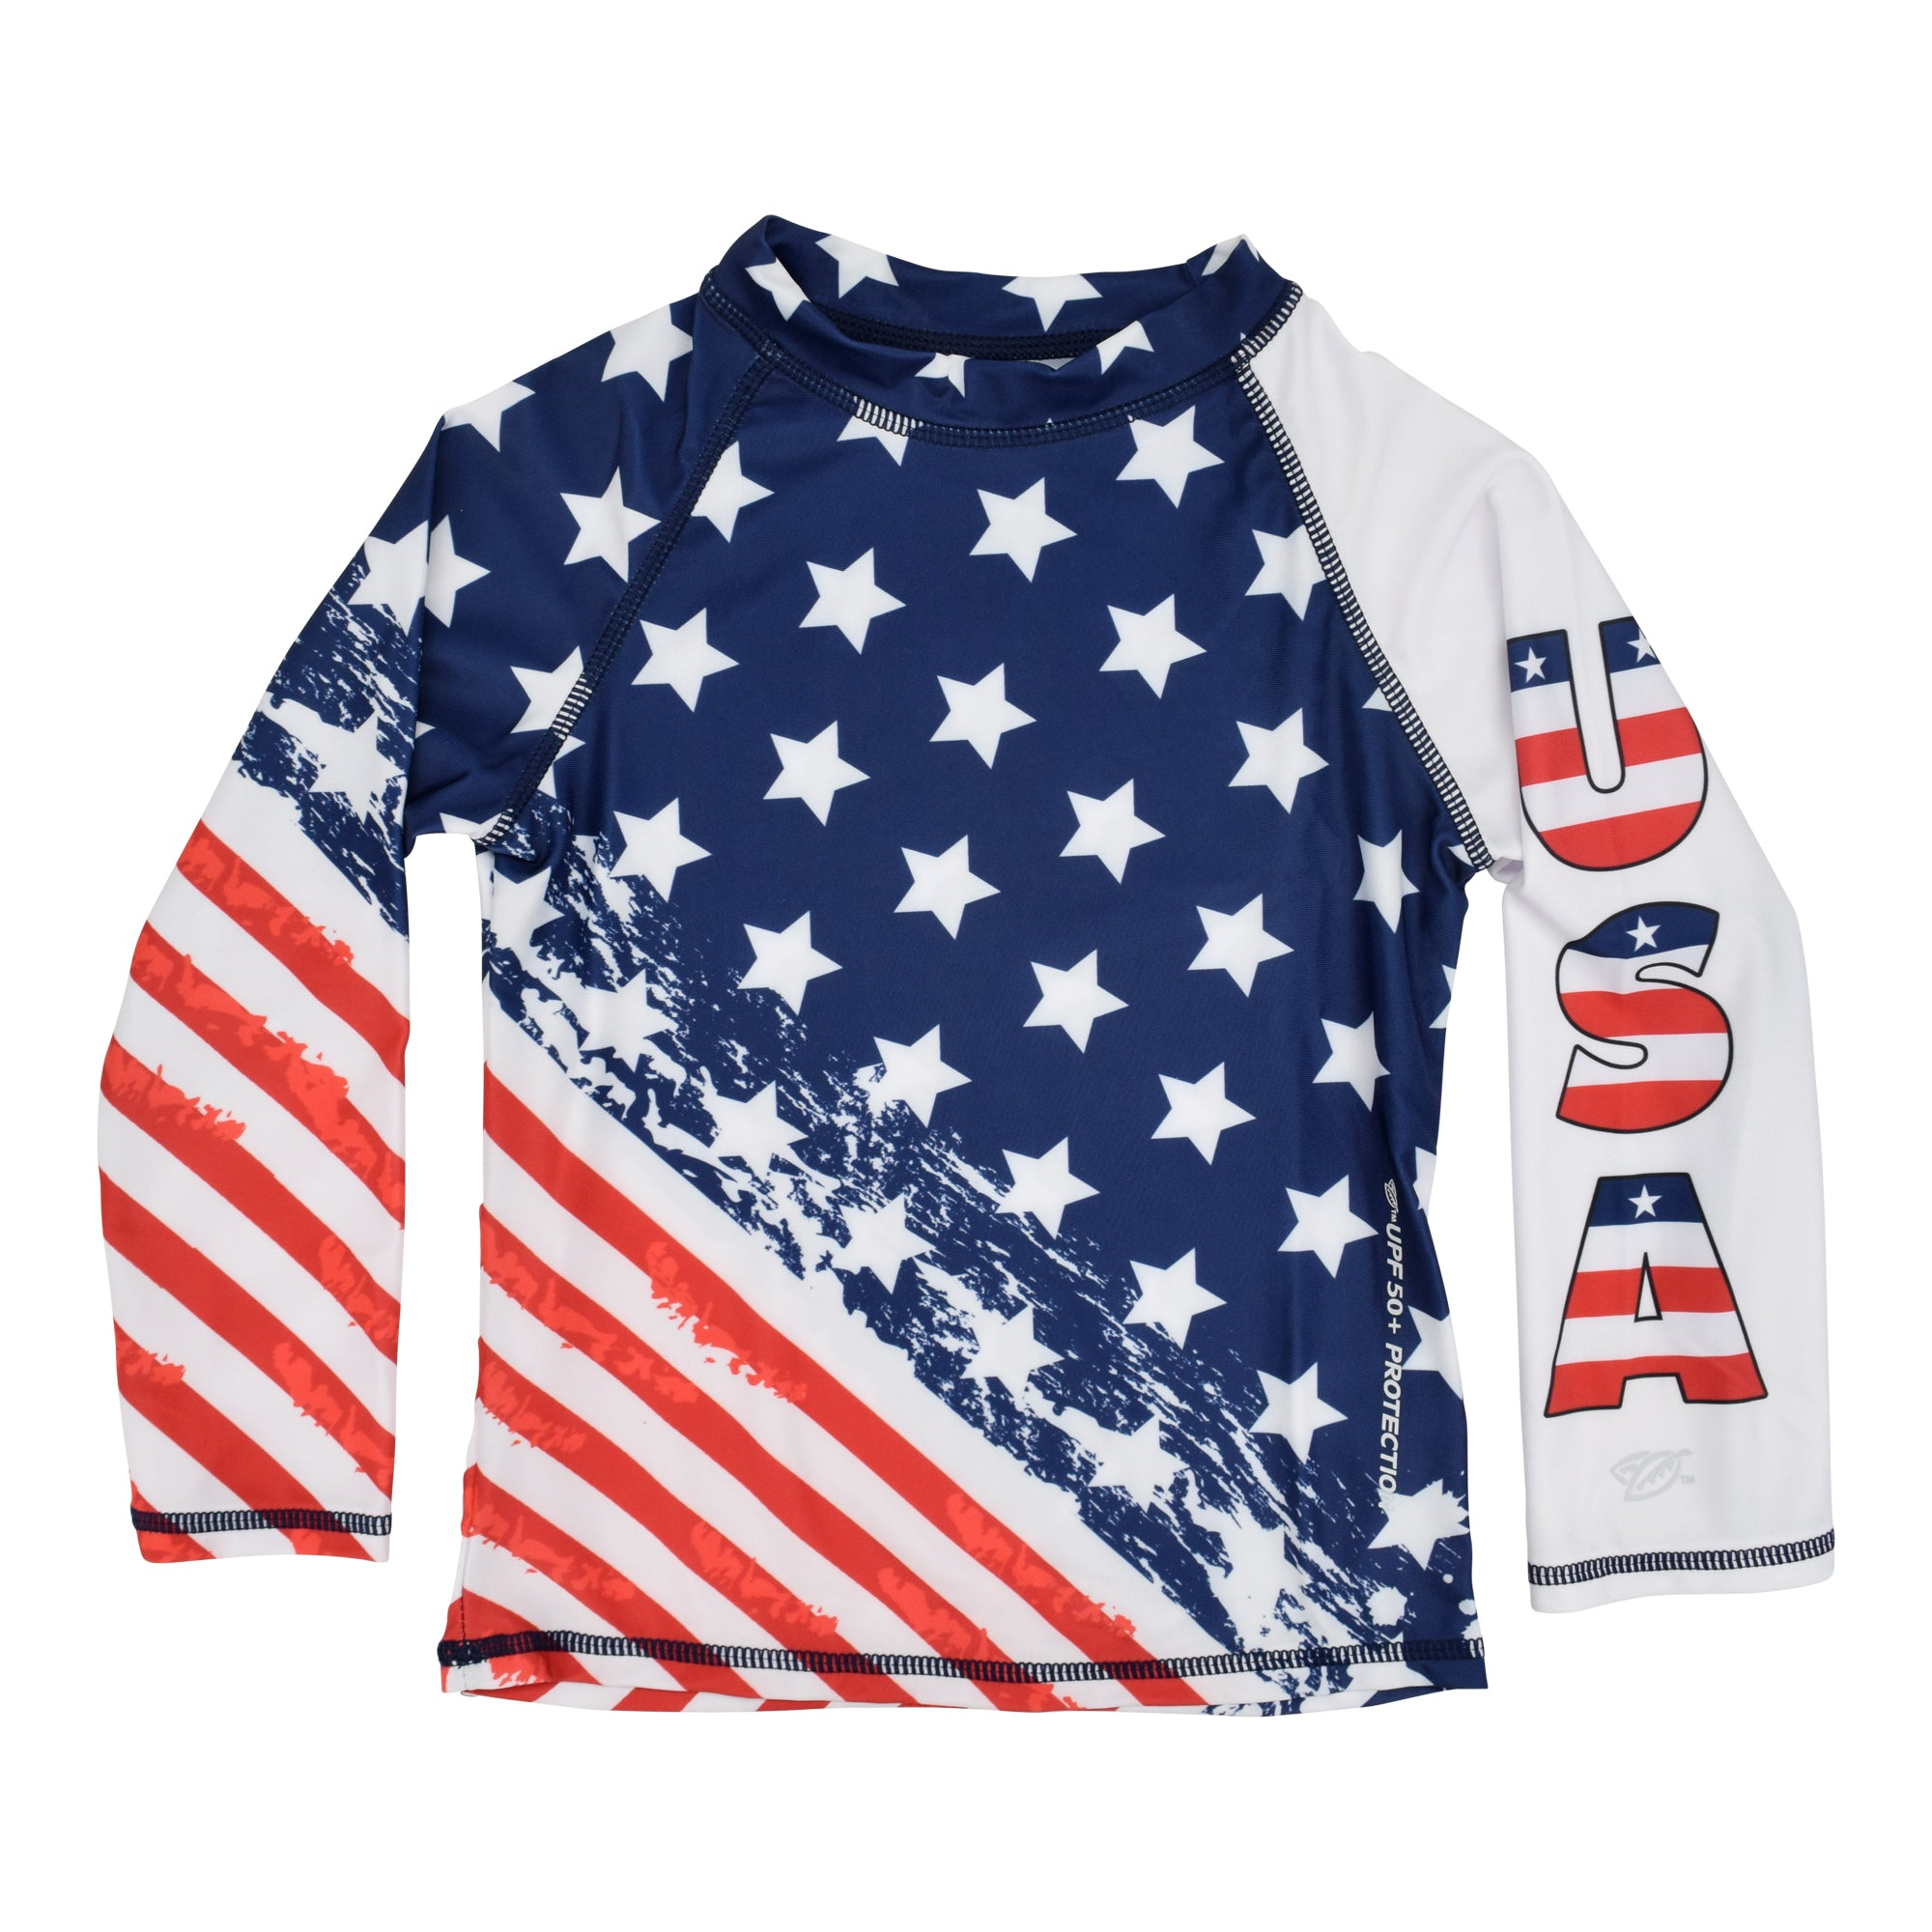 American Flag Toddler 3 pieces set Swimsuit - The Flag Shirt